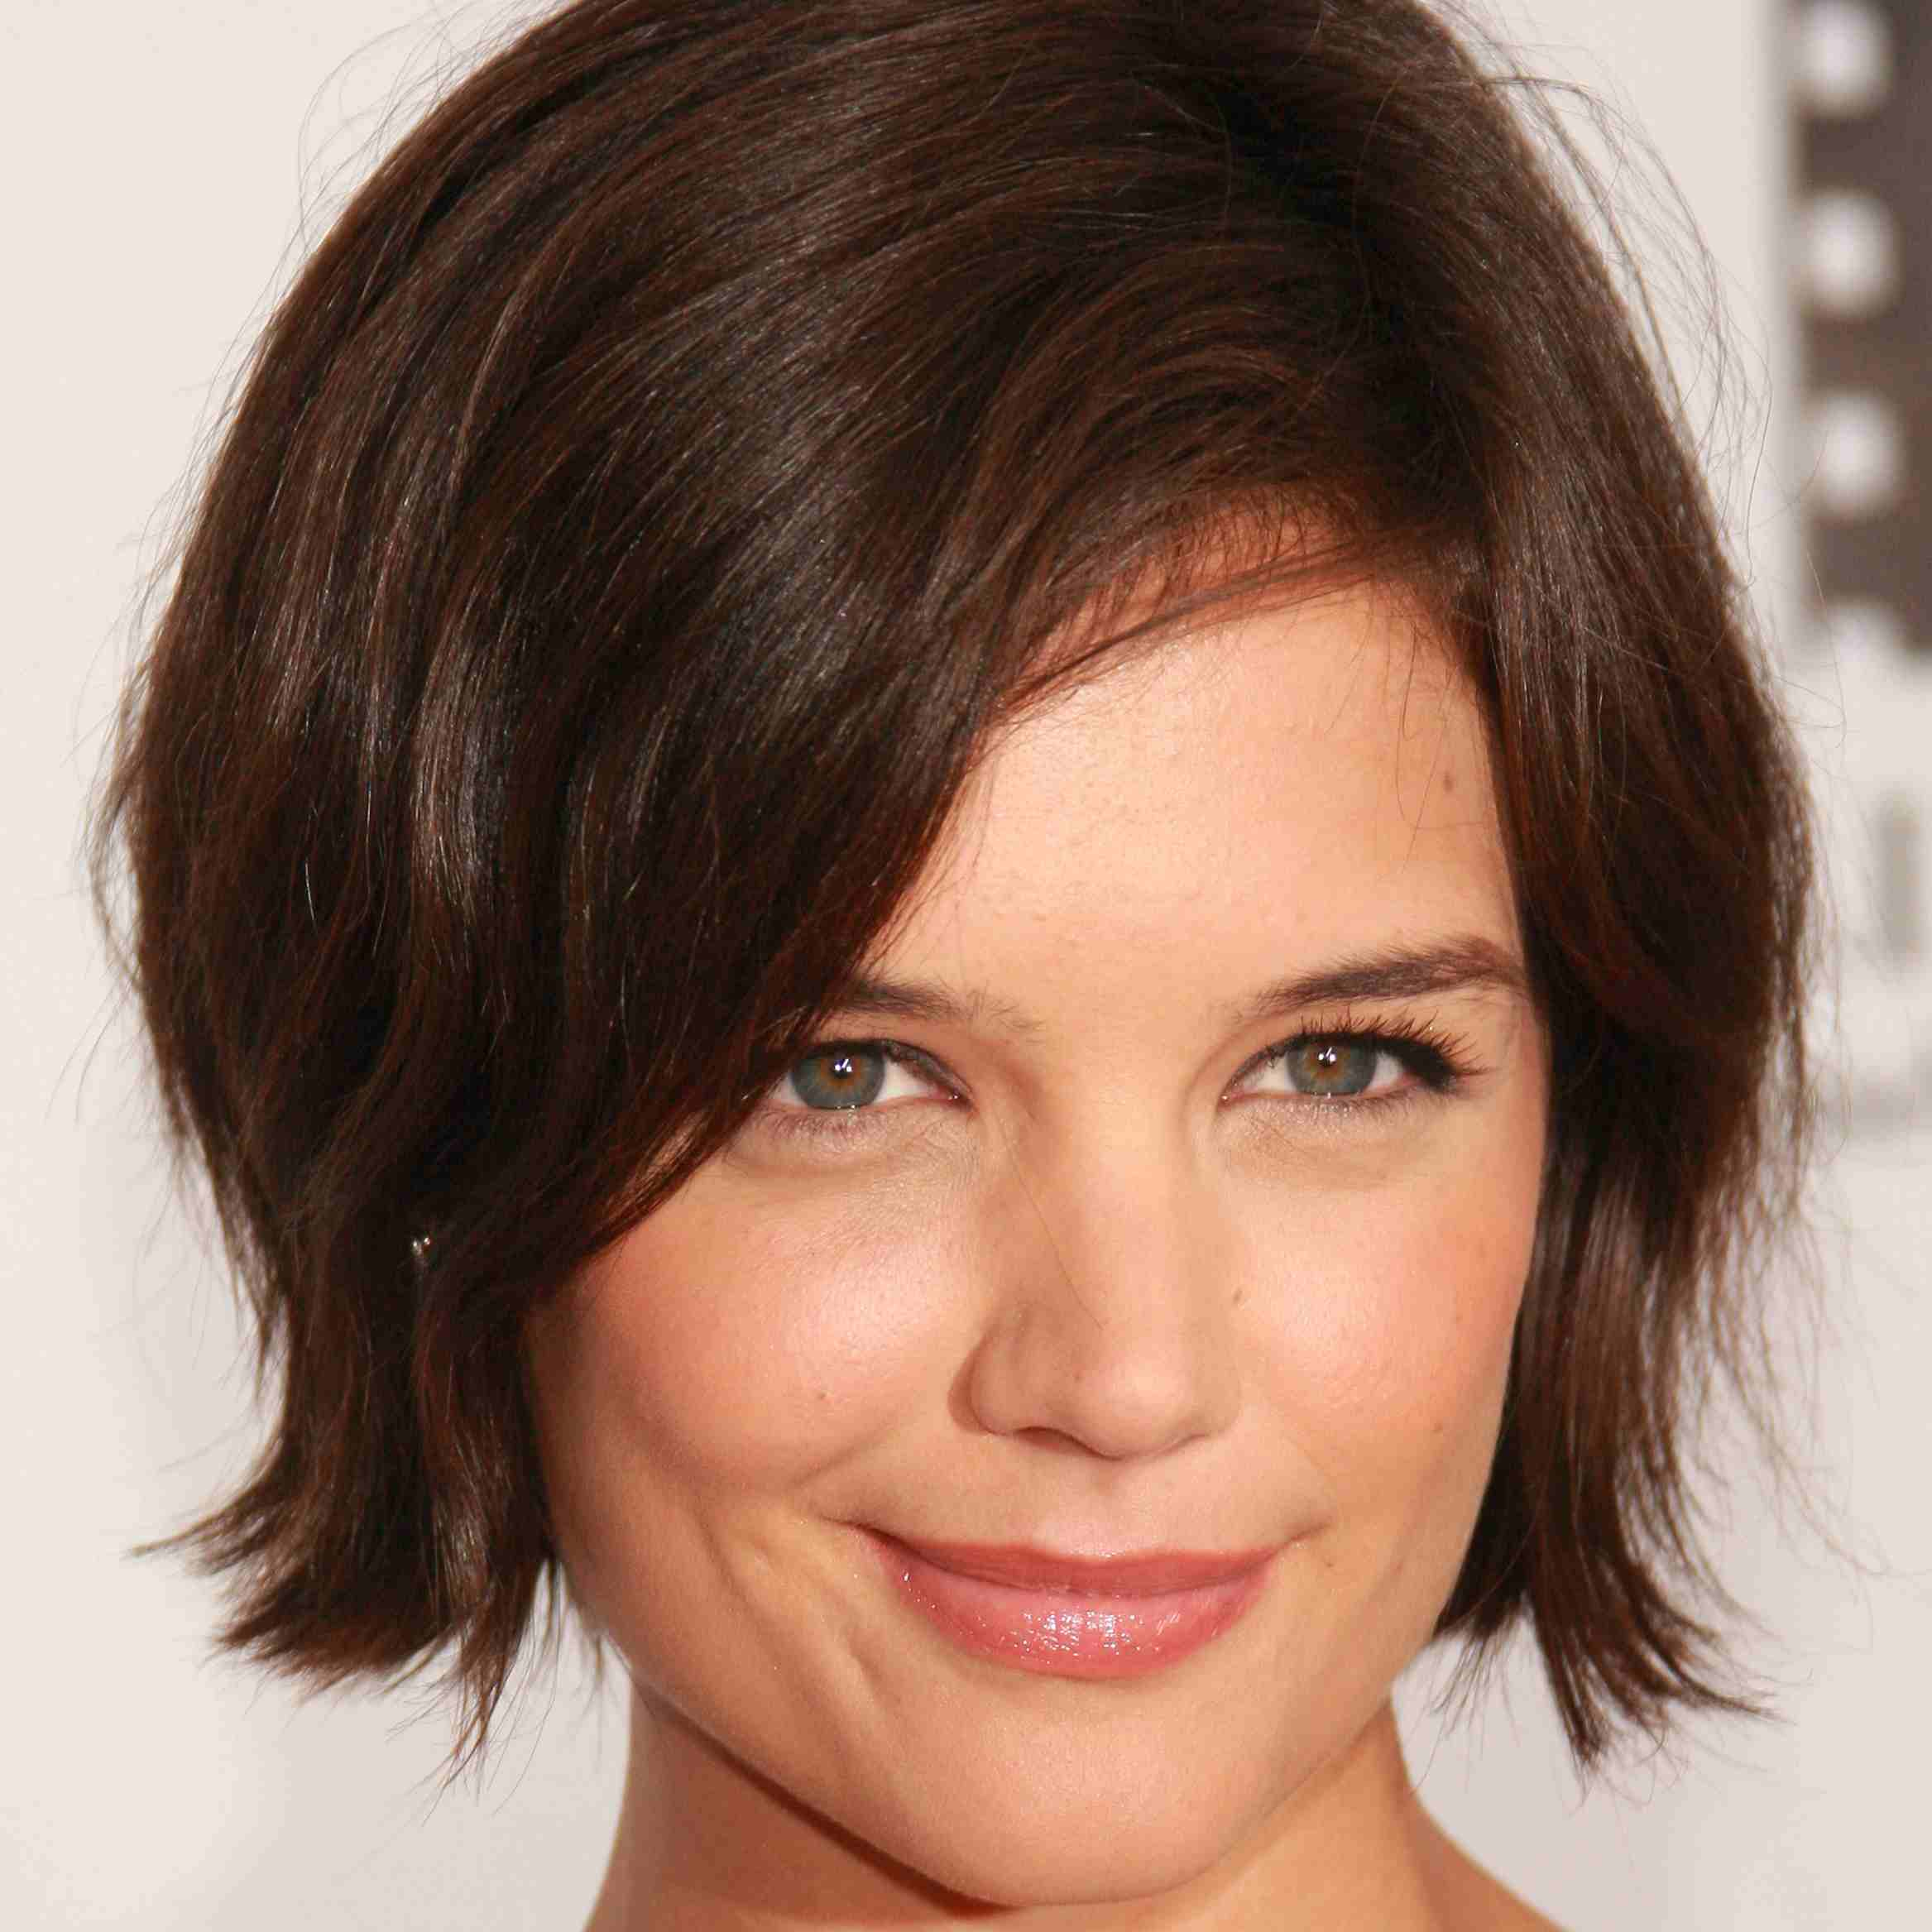 15 Katie Holmes Hairstyles From Long To Short